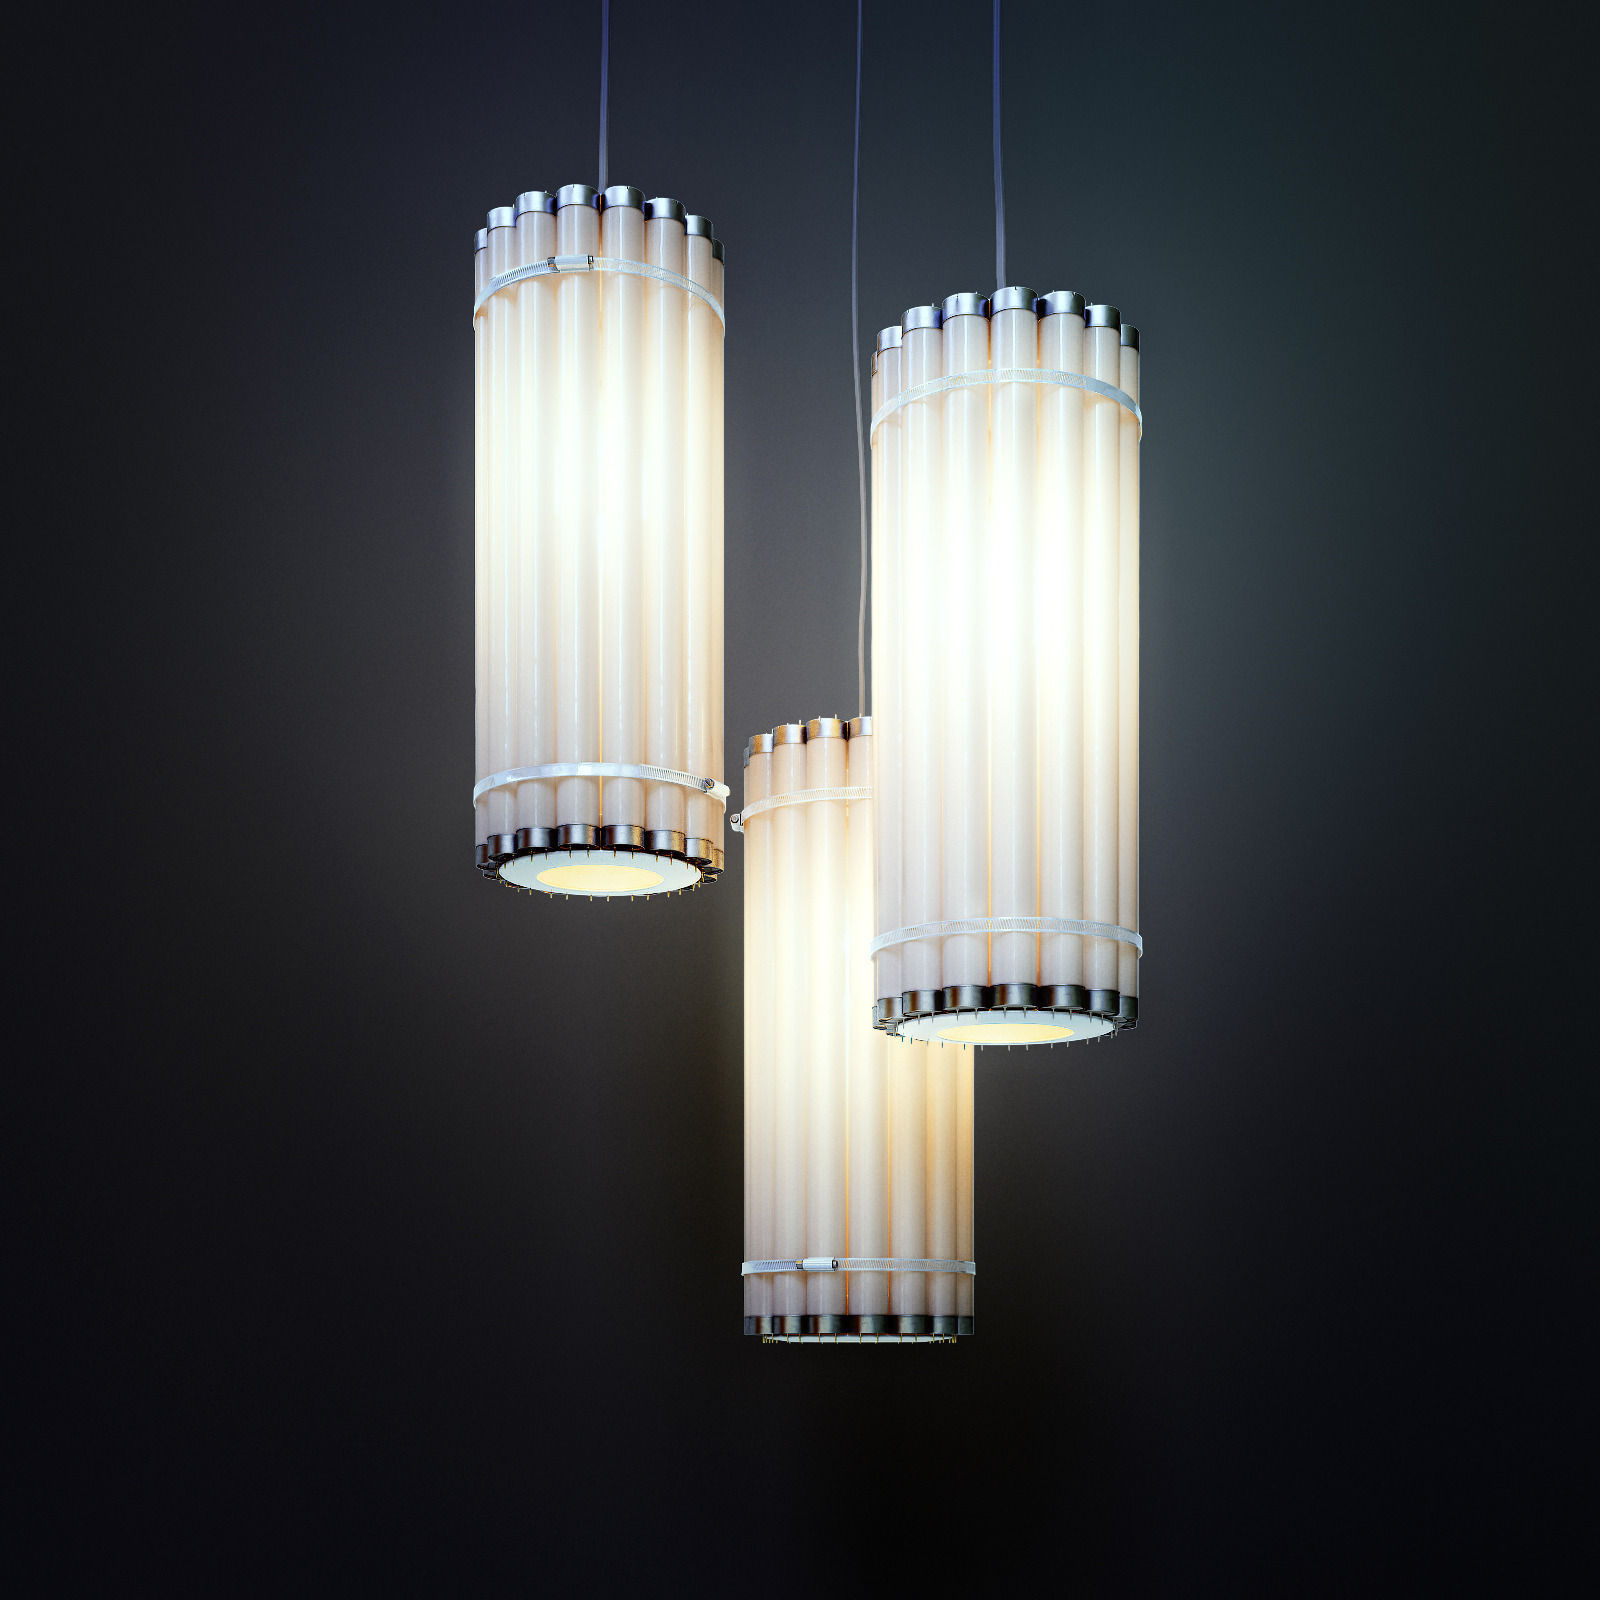 ECO Lamp Vertical Tube by CASTORDESIGN